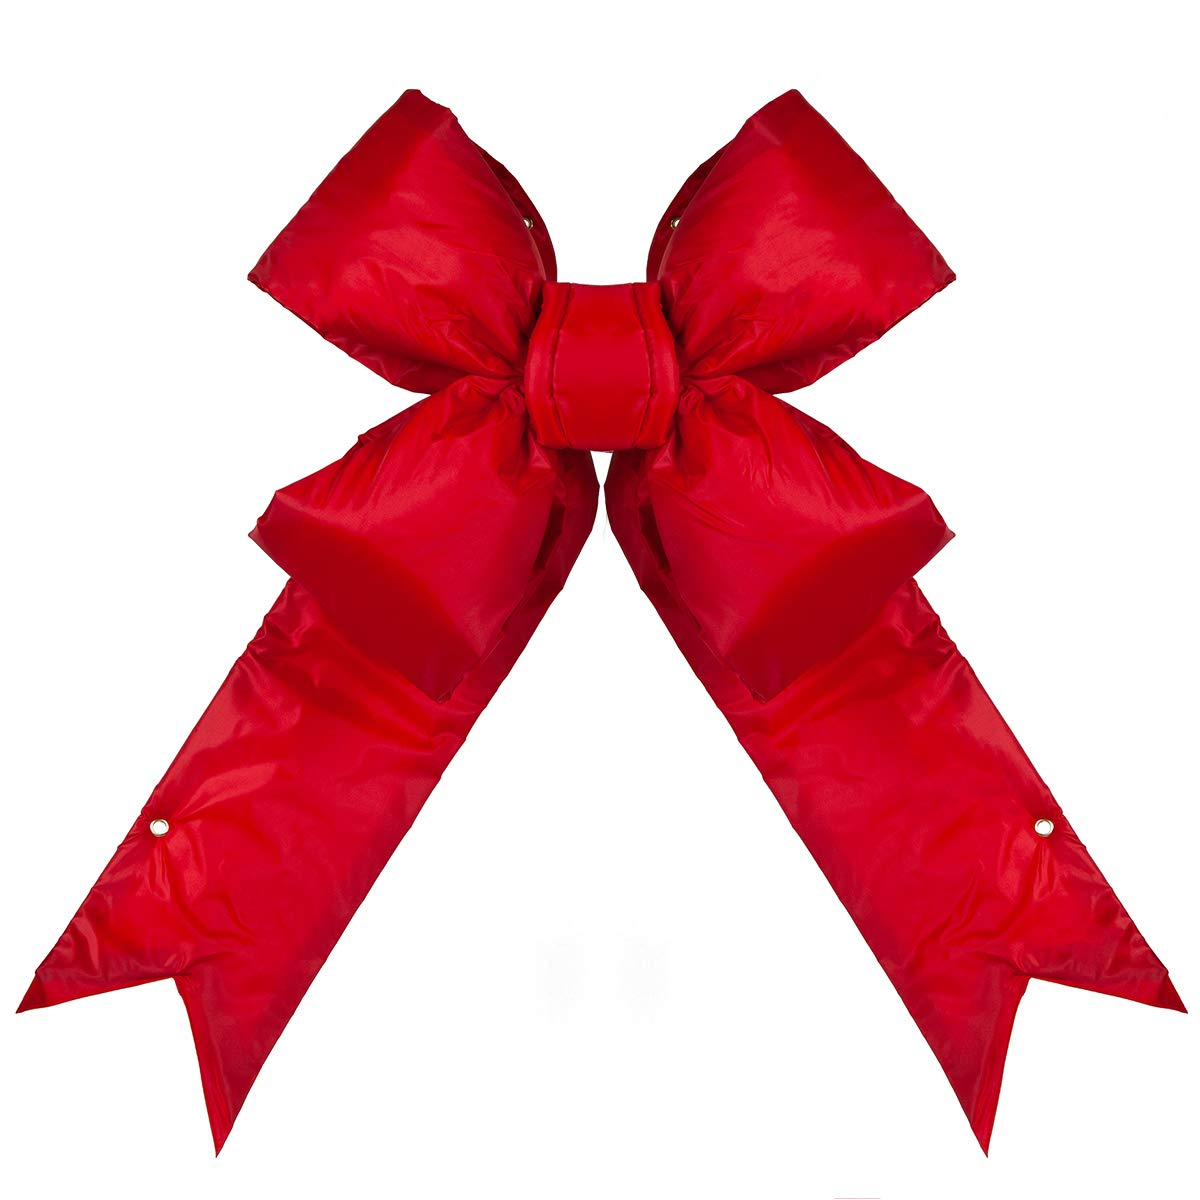 Big Red Bow - Large Outdoor Christmas Bow Commercial Christmas House Decorative Bow (24'', Red Structural 3D Nylon Bow)